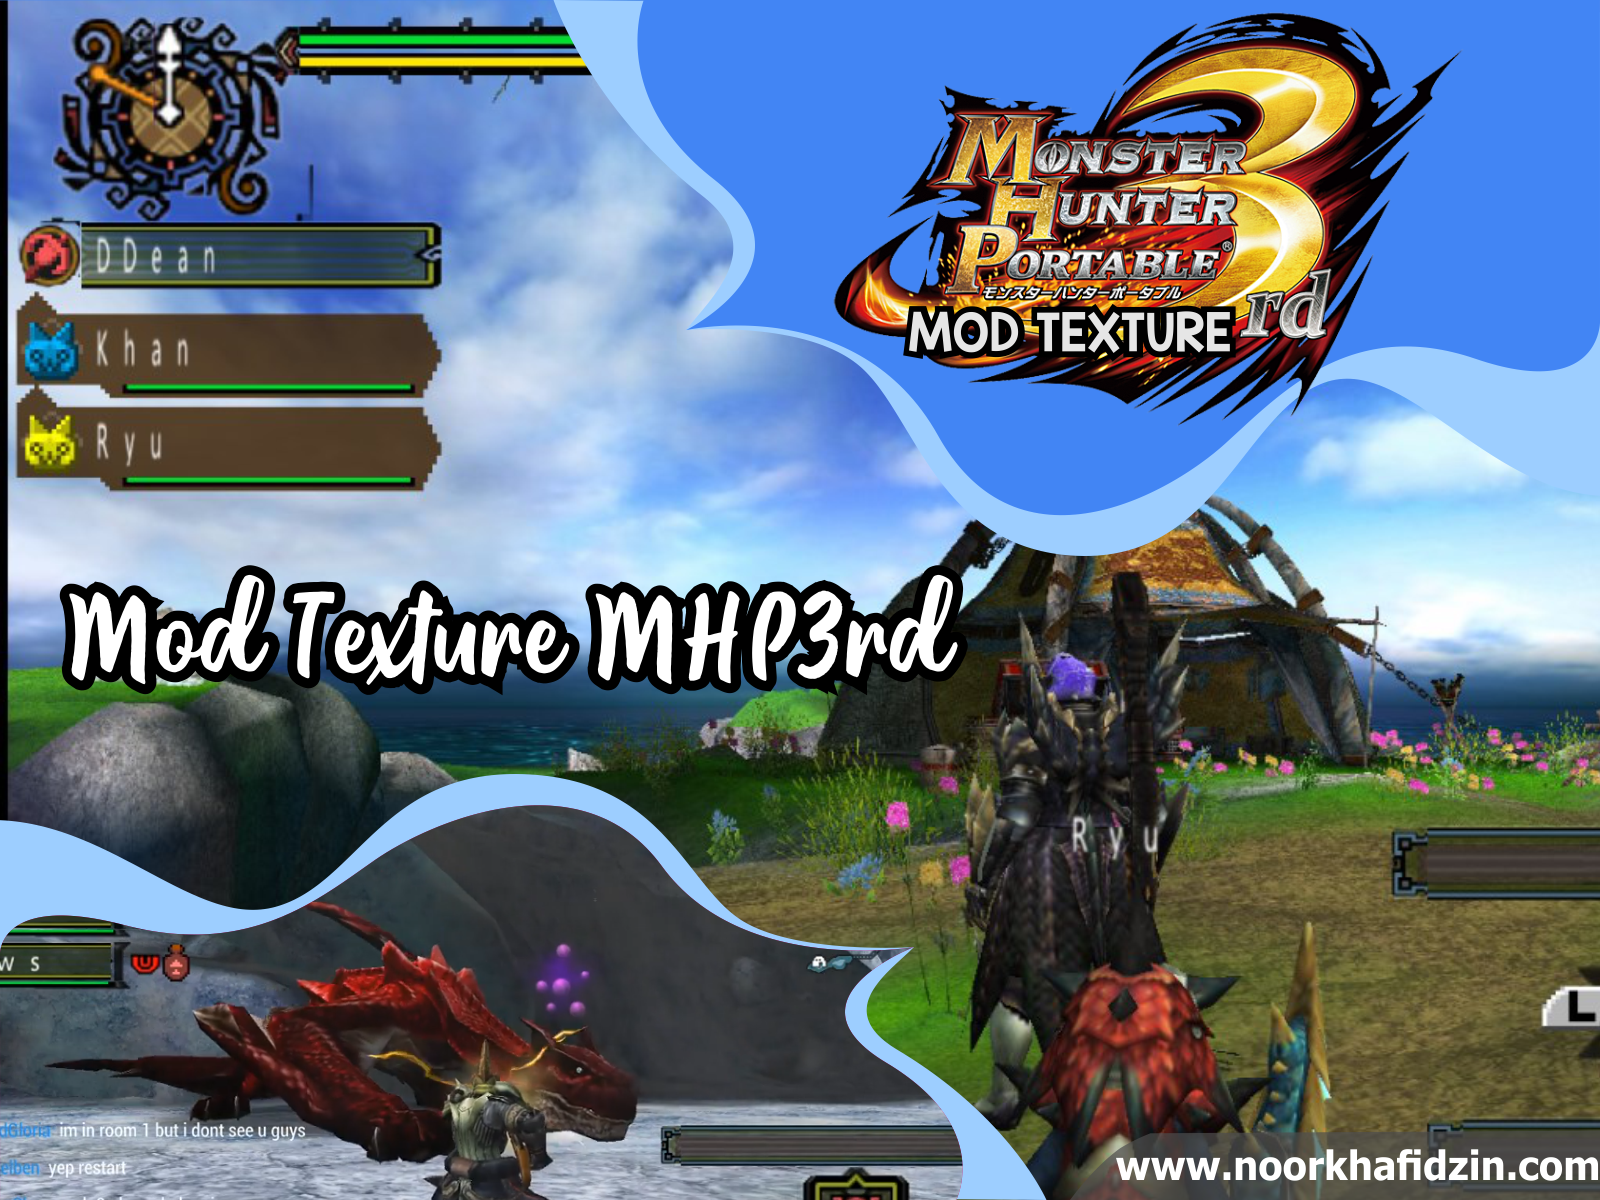 Download Mod HD Texture Pack Monster Hunter Portable 3rd (MHP3rd) PPSSPP